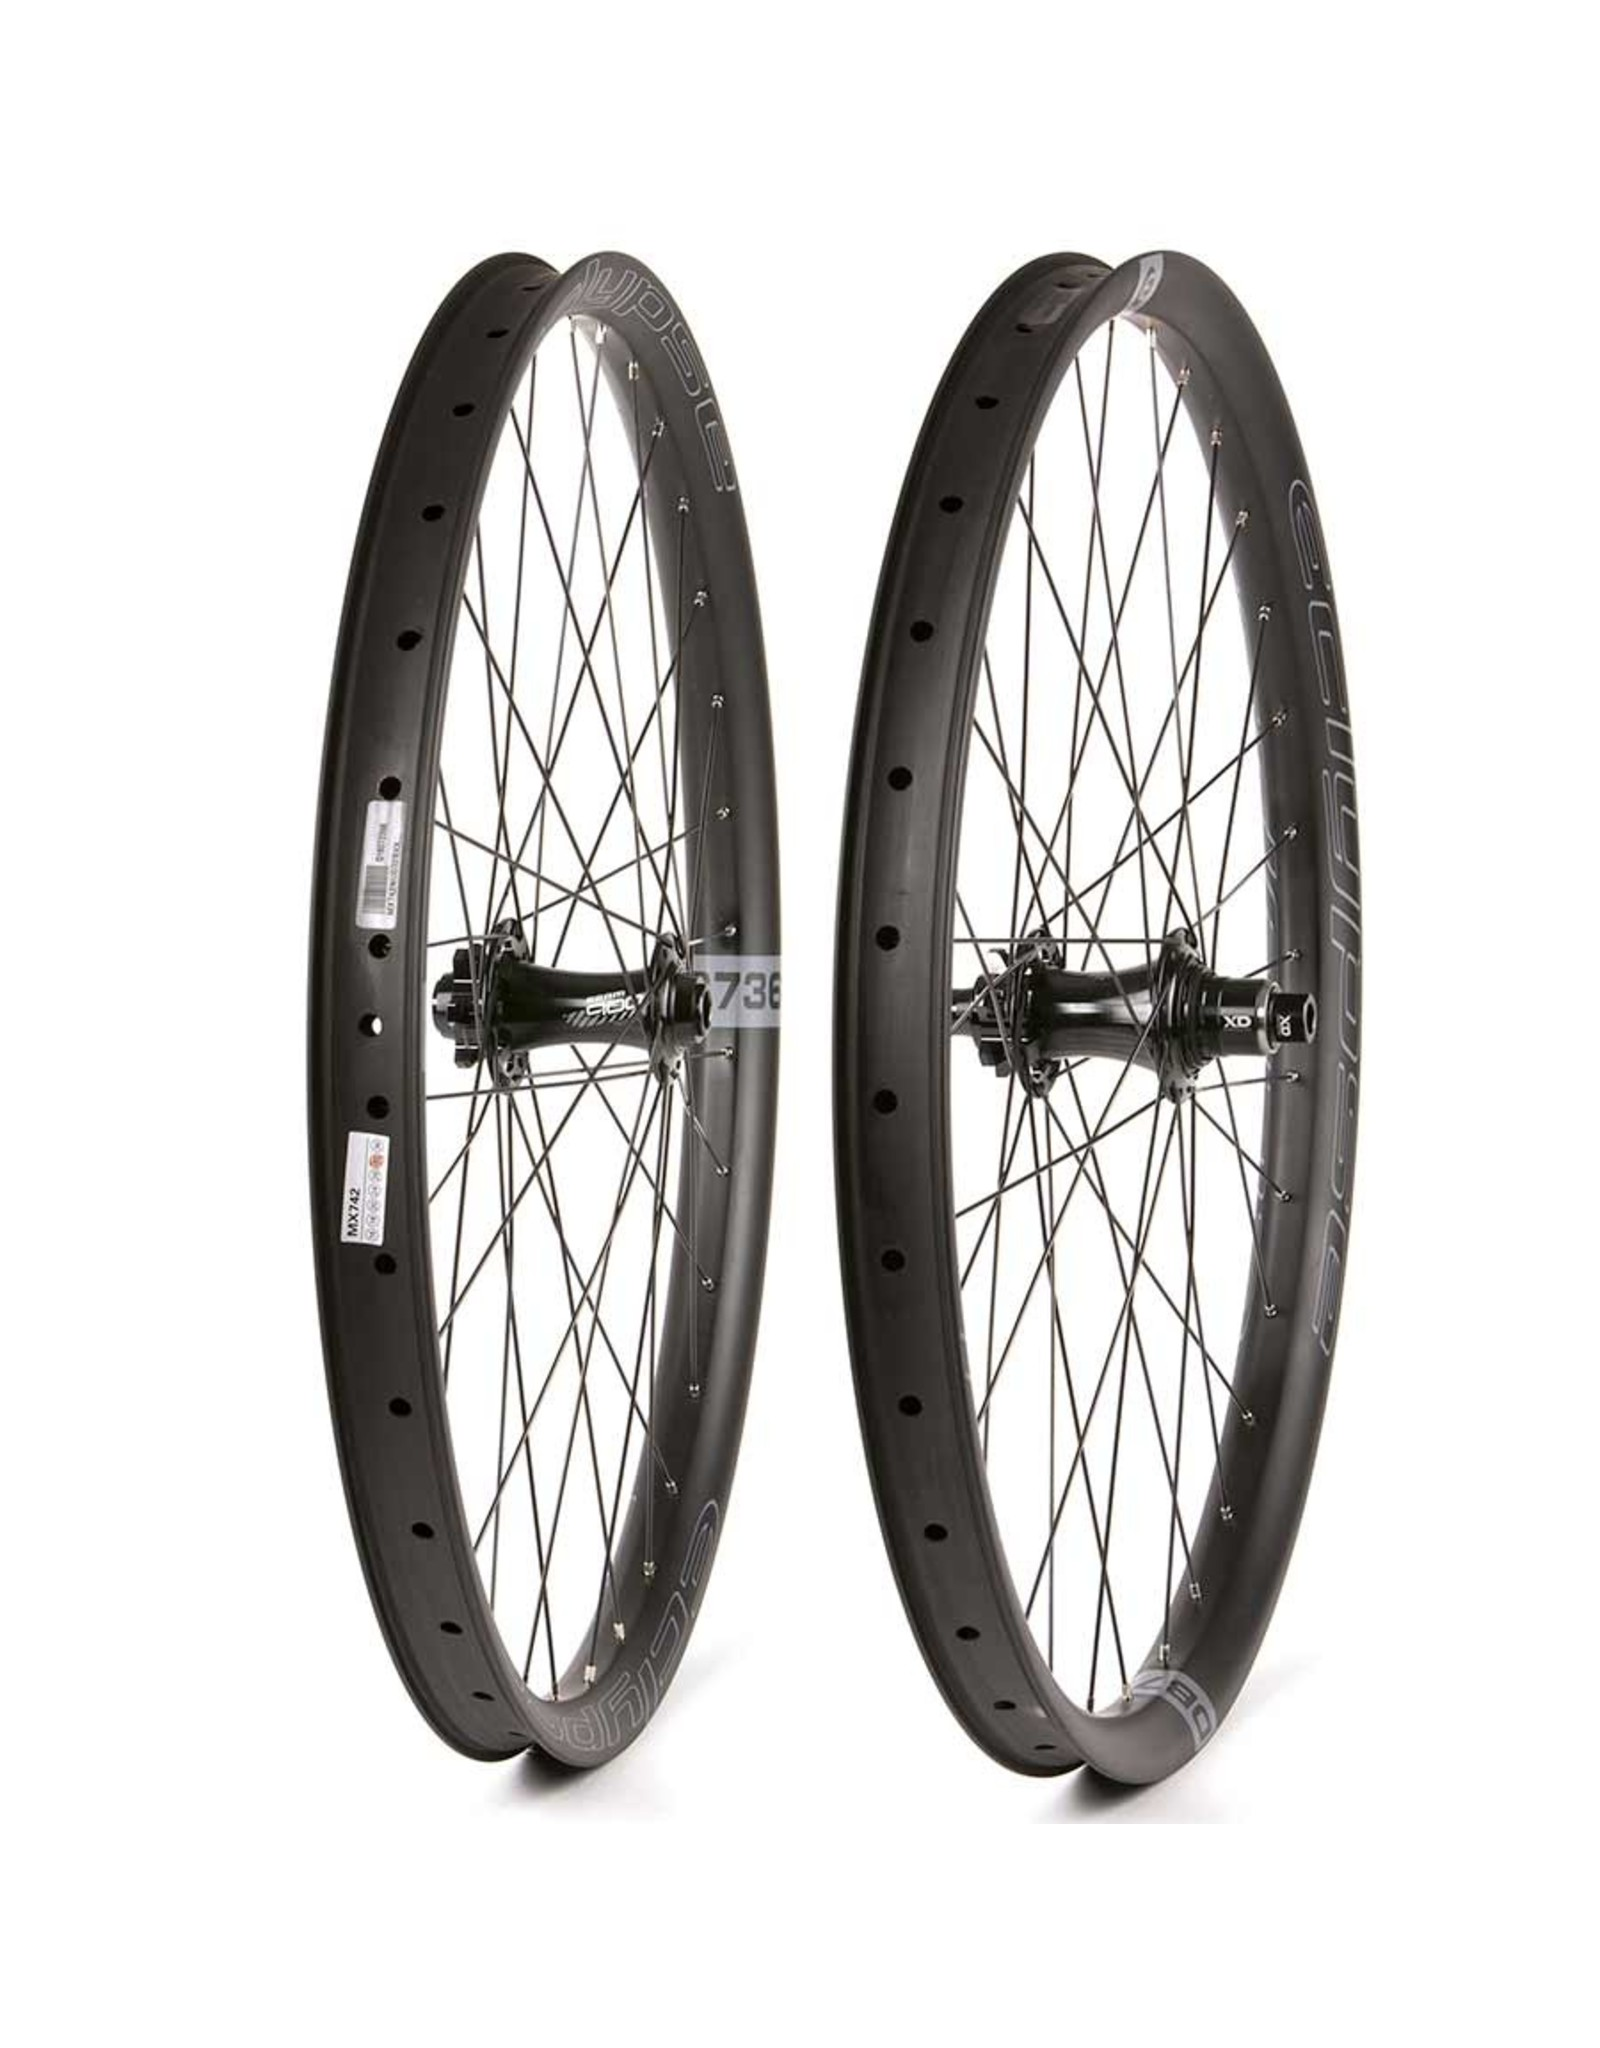 Eclypse, DB736 Wide Trail Boost XD, Wheel, Front and Rear, 27.5'' / 584, Holes: F: 32, R: 32, F: 15mm, R: 12mm, F: 110, R: 148, Disc IS 6-bolt, SRAM XD, Pair